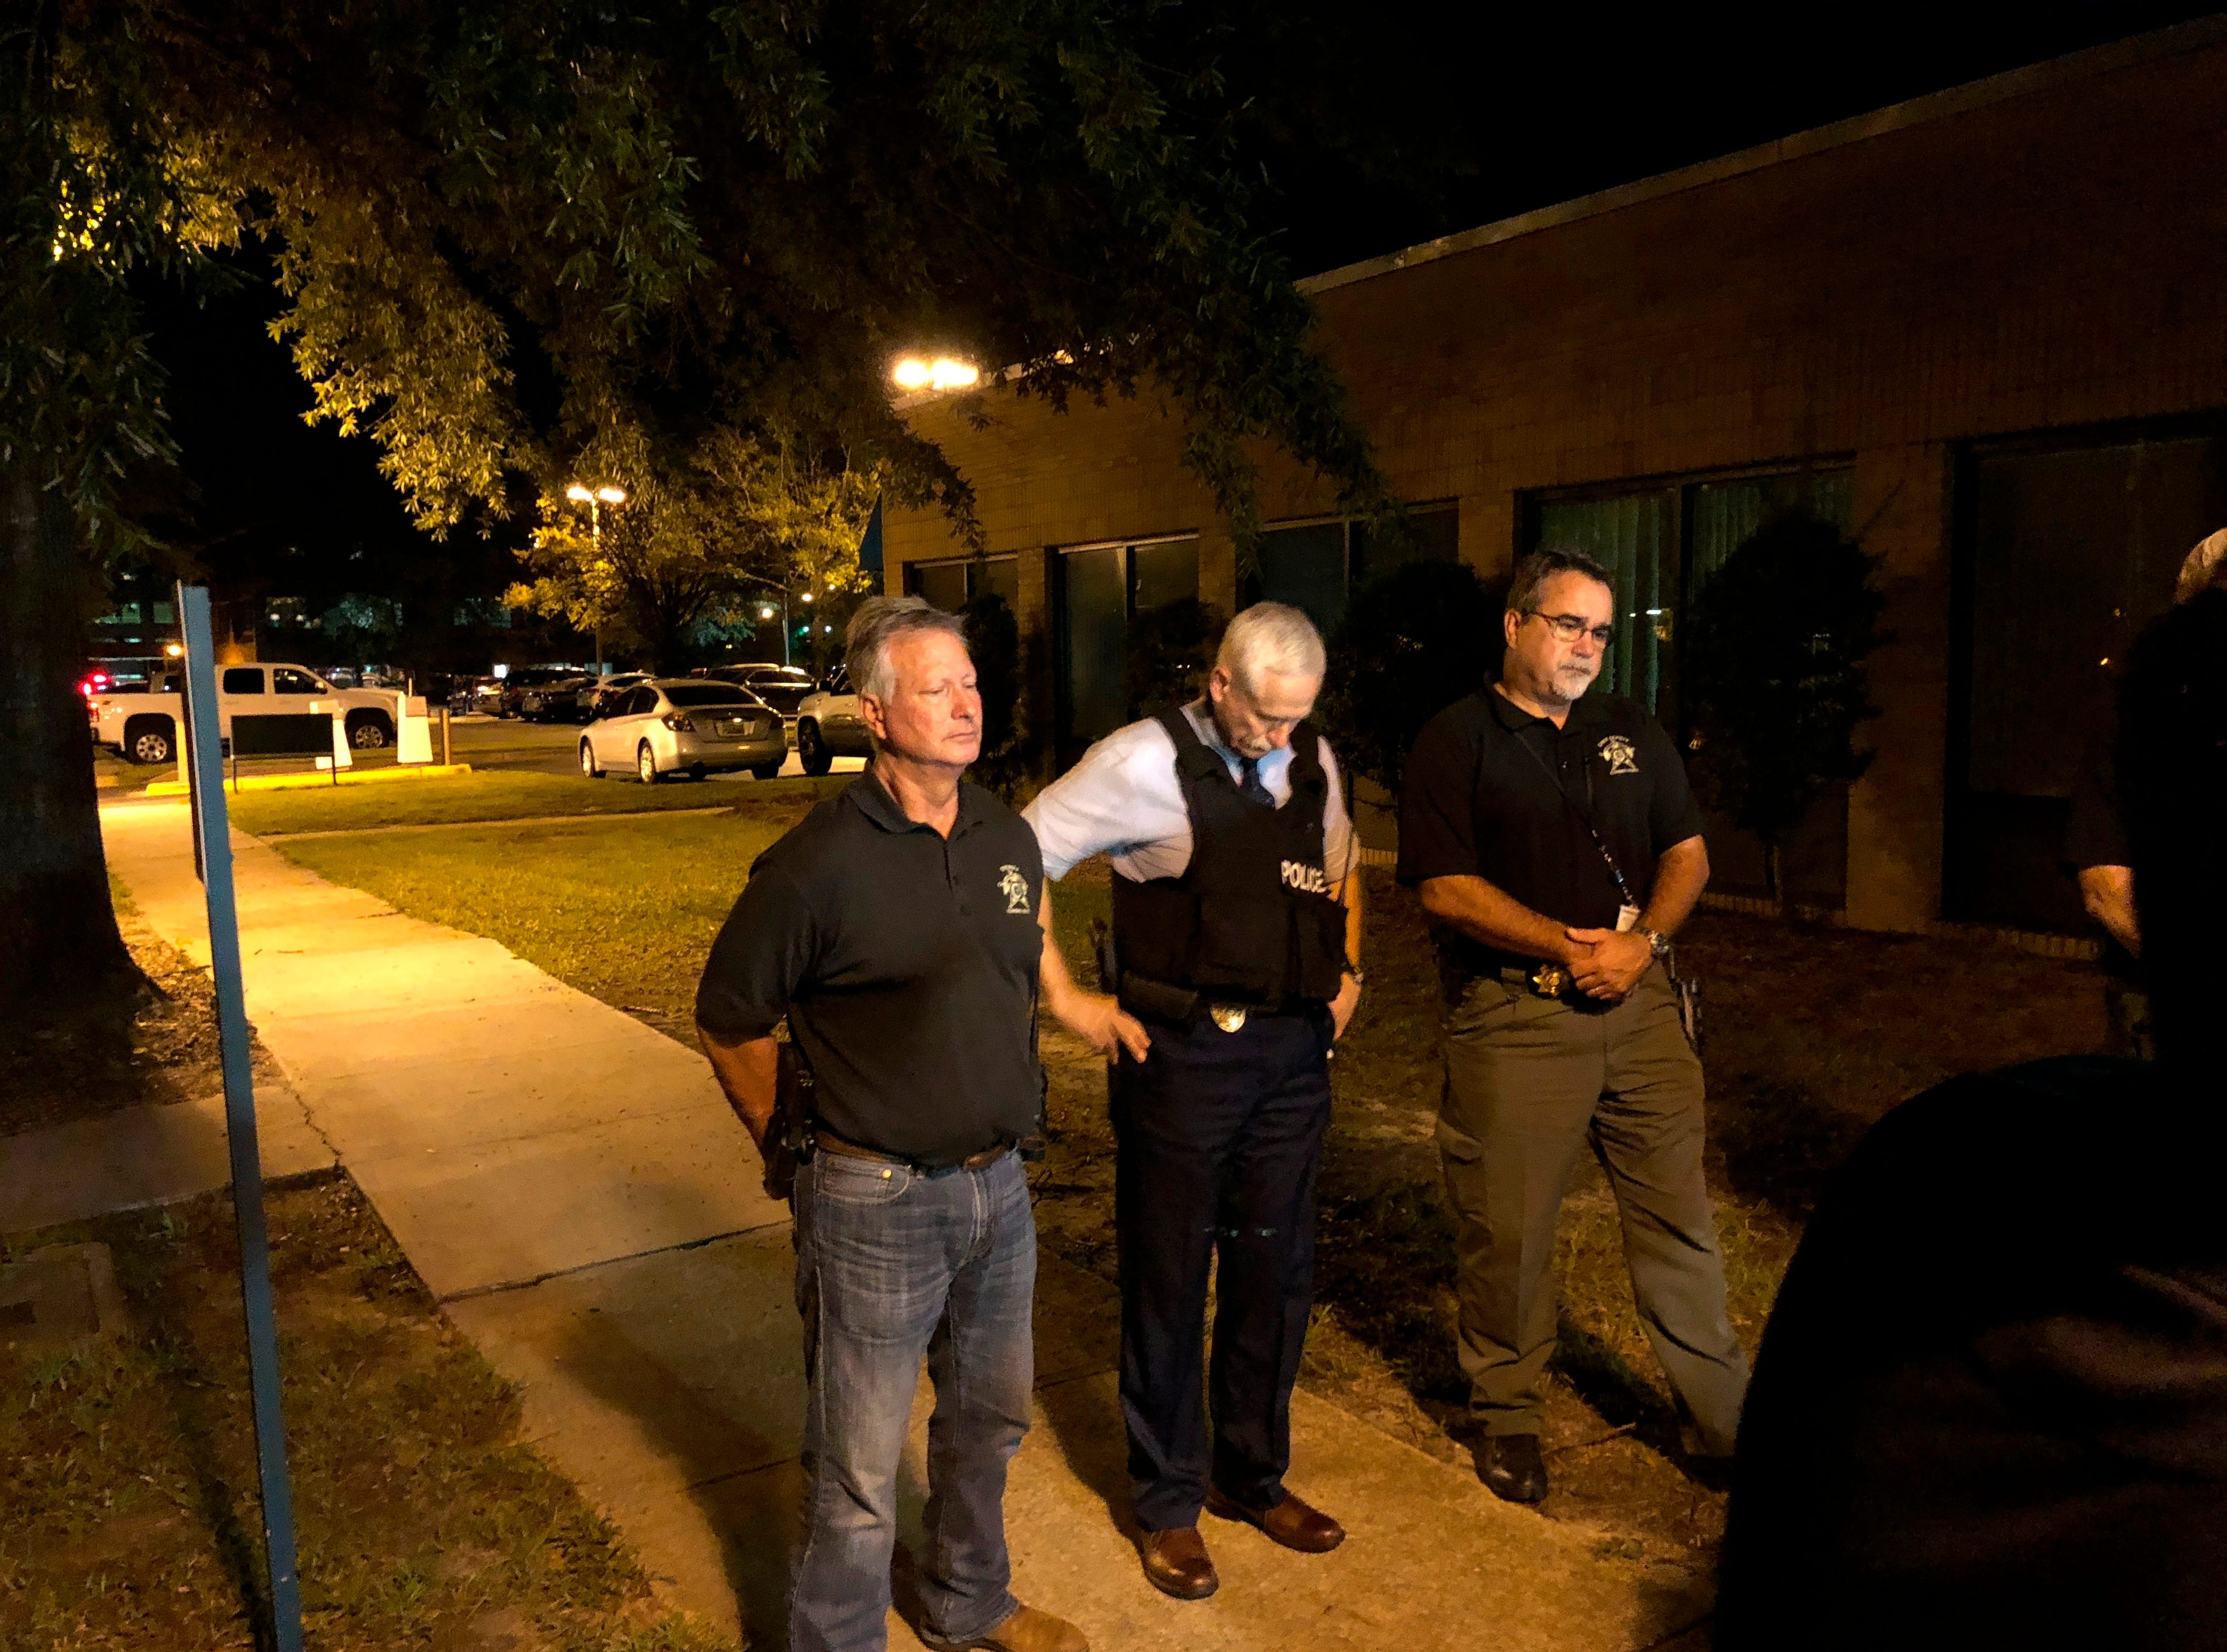 Florence County Sheriff Kenney Boone, from left, Florence Police Chief Allen Heidler and Florence County Chief Deputy Glenn Kirby speak to the media following a shooting where several law enforcement officers were shot, one fatally, Wednesday, Oct. 3, 2018, in Florence, S.C. (AP Photo/Jeffrey Collins)